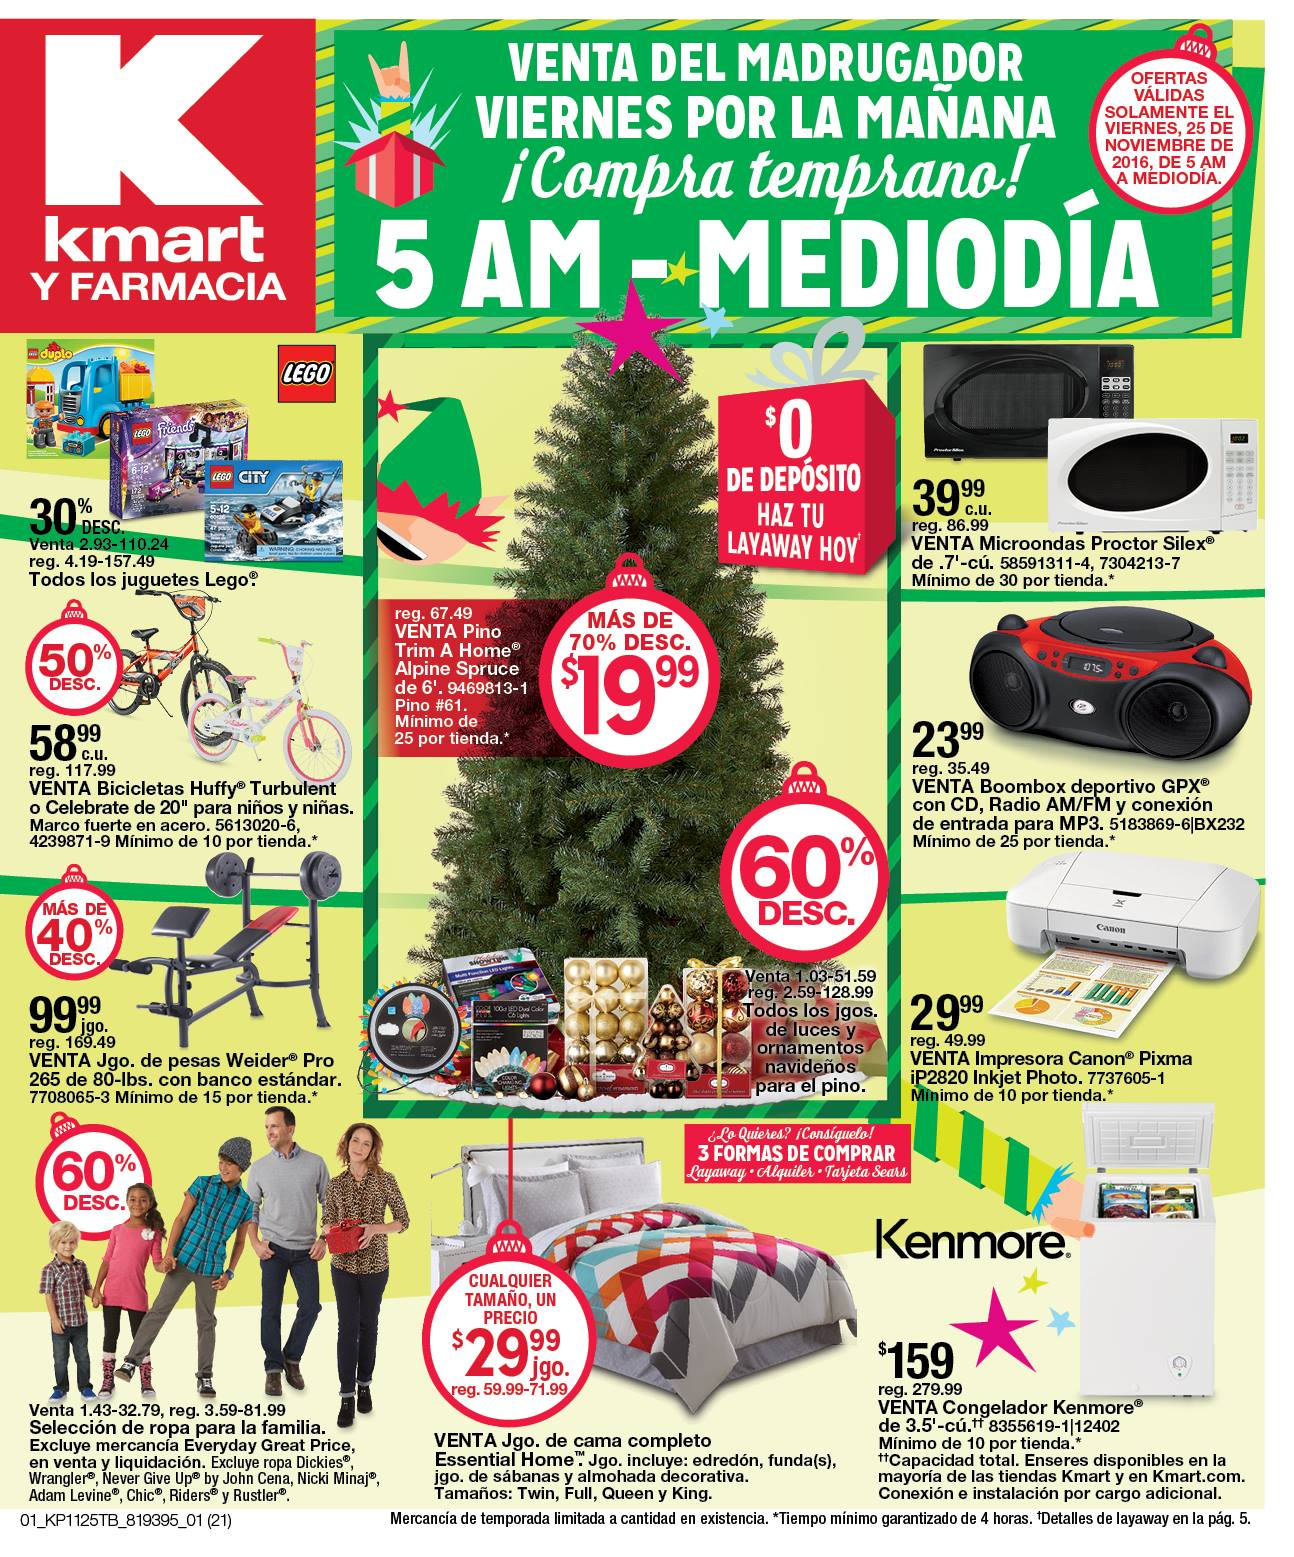 Shopper Kmart Puerto Rico – Black Friday (Venta del Madrugador)